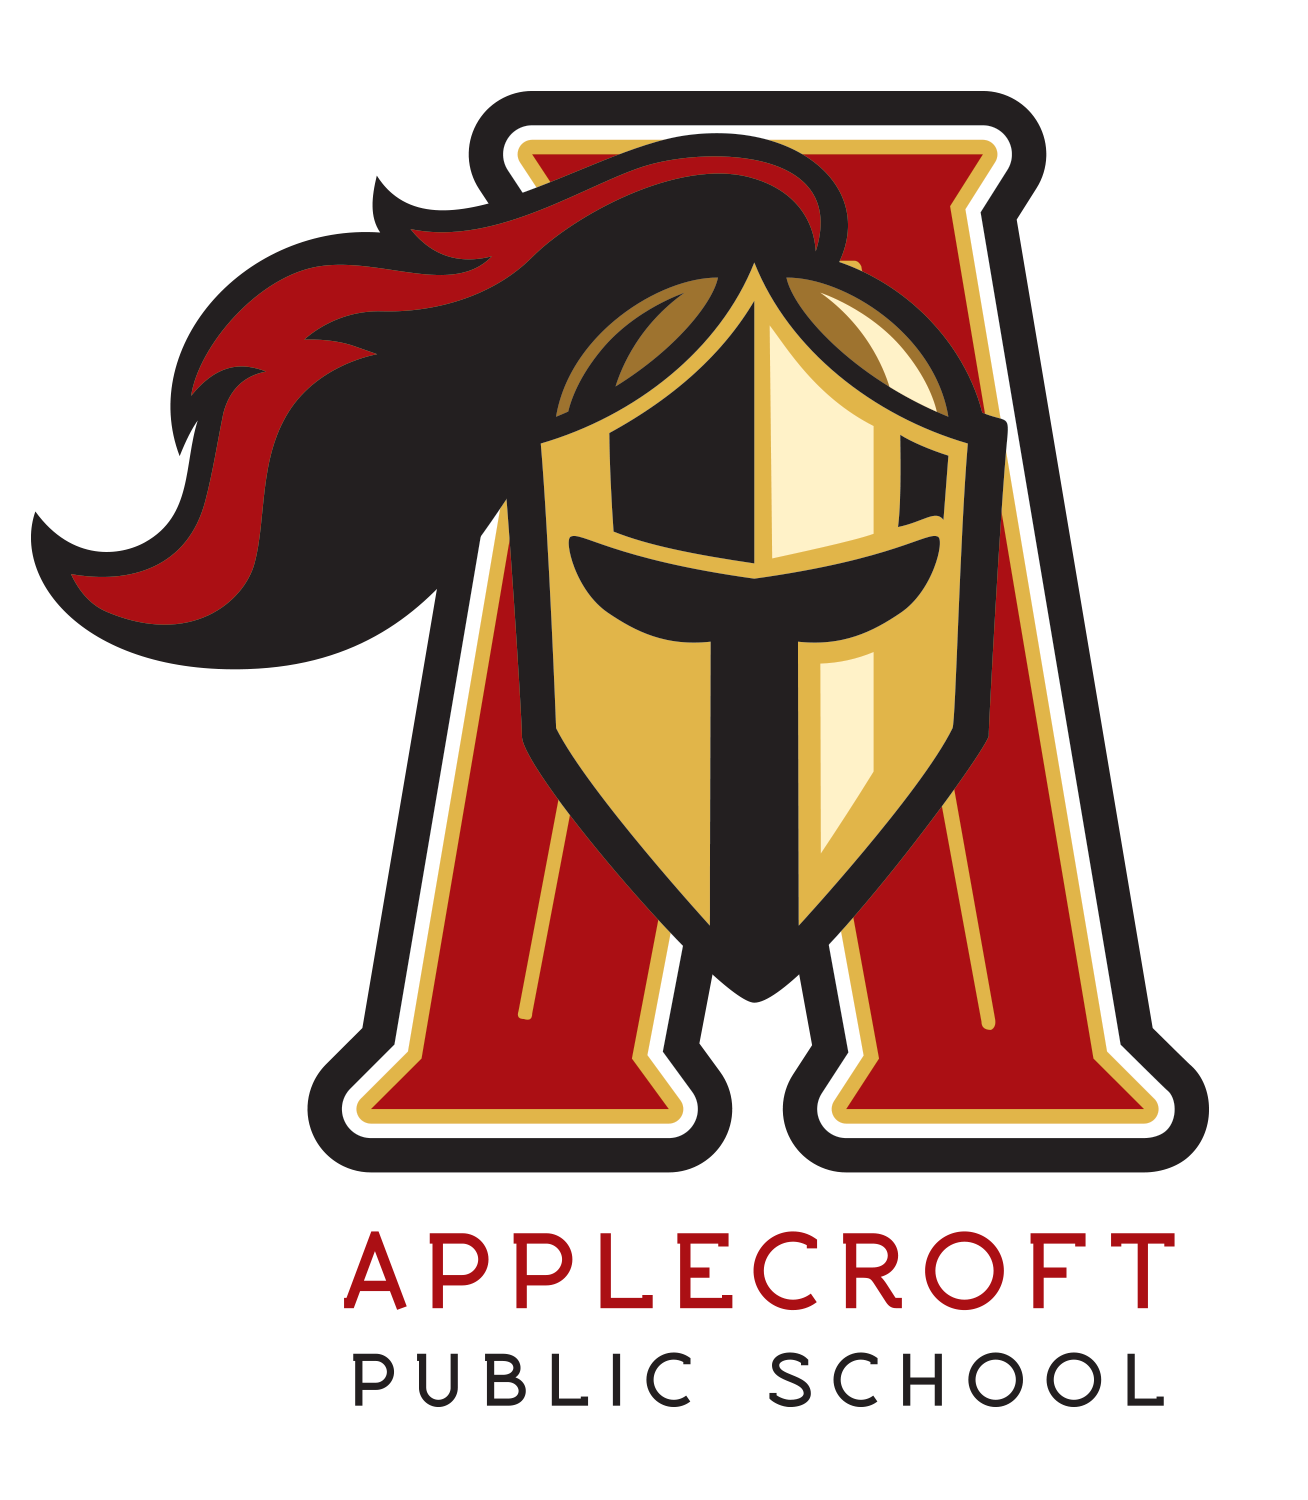 Applecroft Public School logo